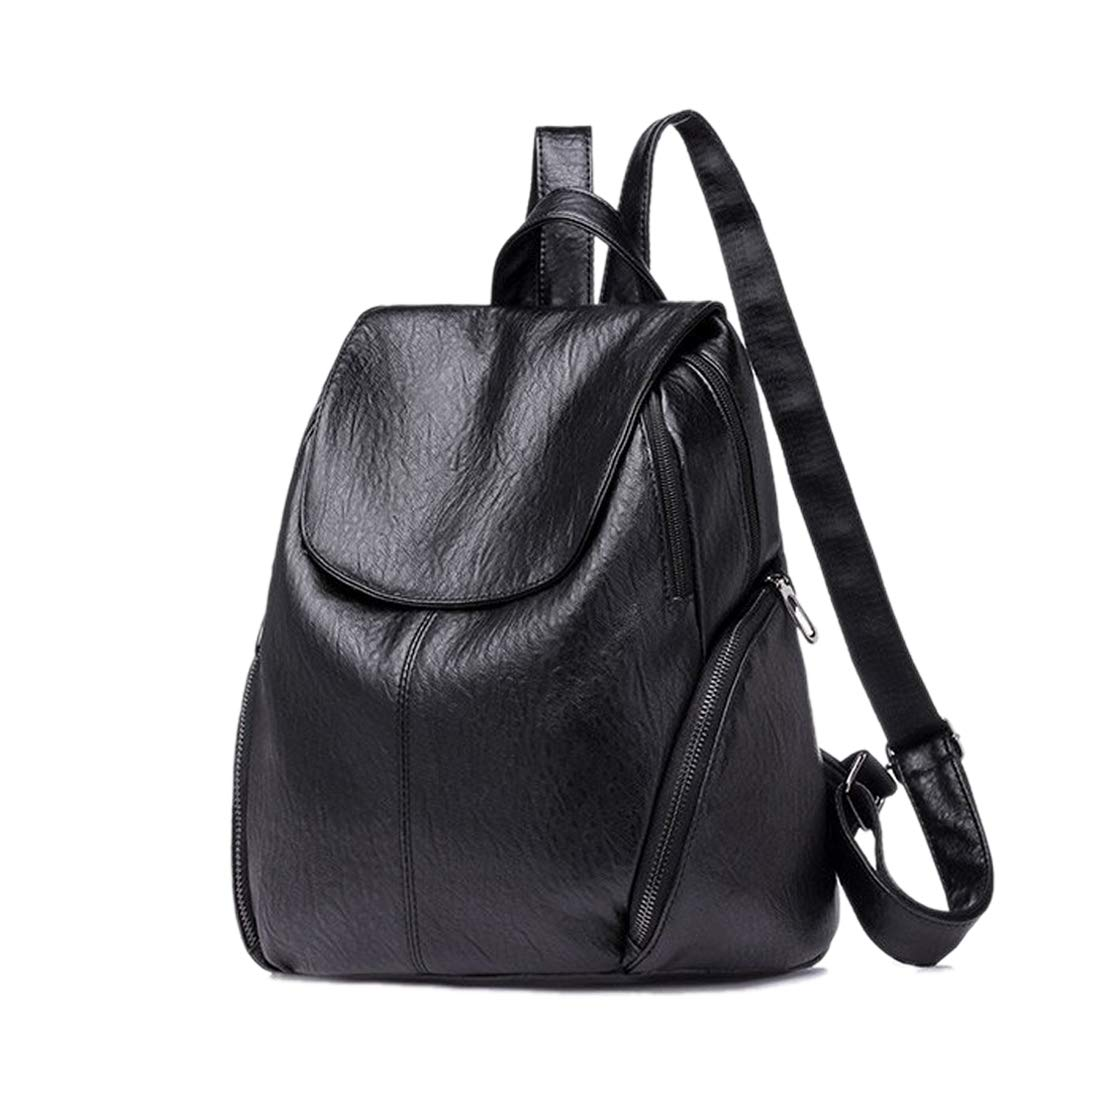 Artwell Women Backpack Purse PU Washed Leather Casual Ladies Rucksack Shoulder Bag with 2 Front Zipper Pocket (Black)